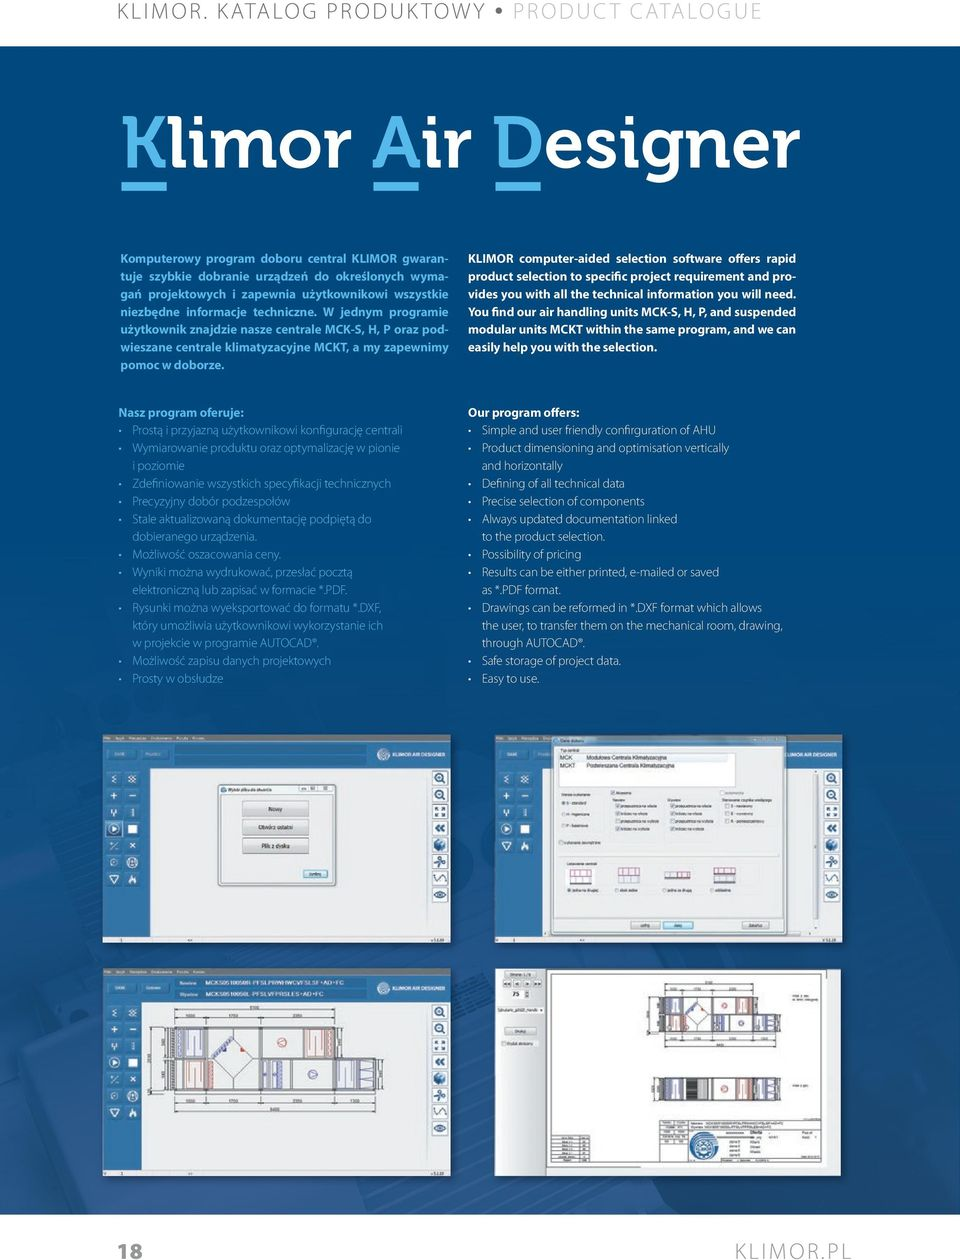 KLIMOR computer-aided selection software offers rapid product selection to specific project requirement and provides you with all the technical information you will need.